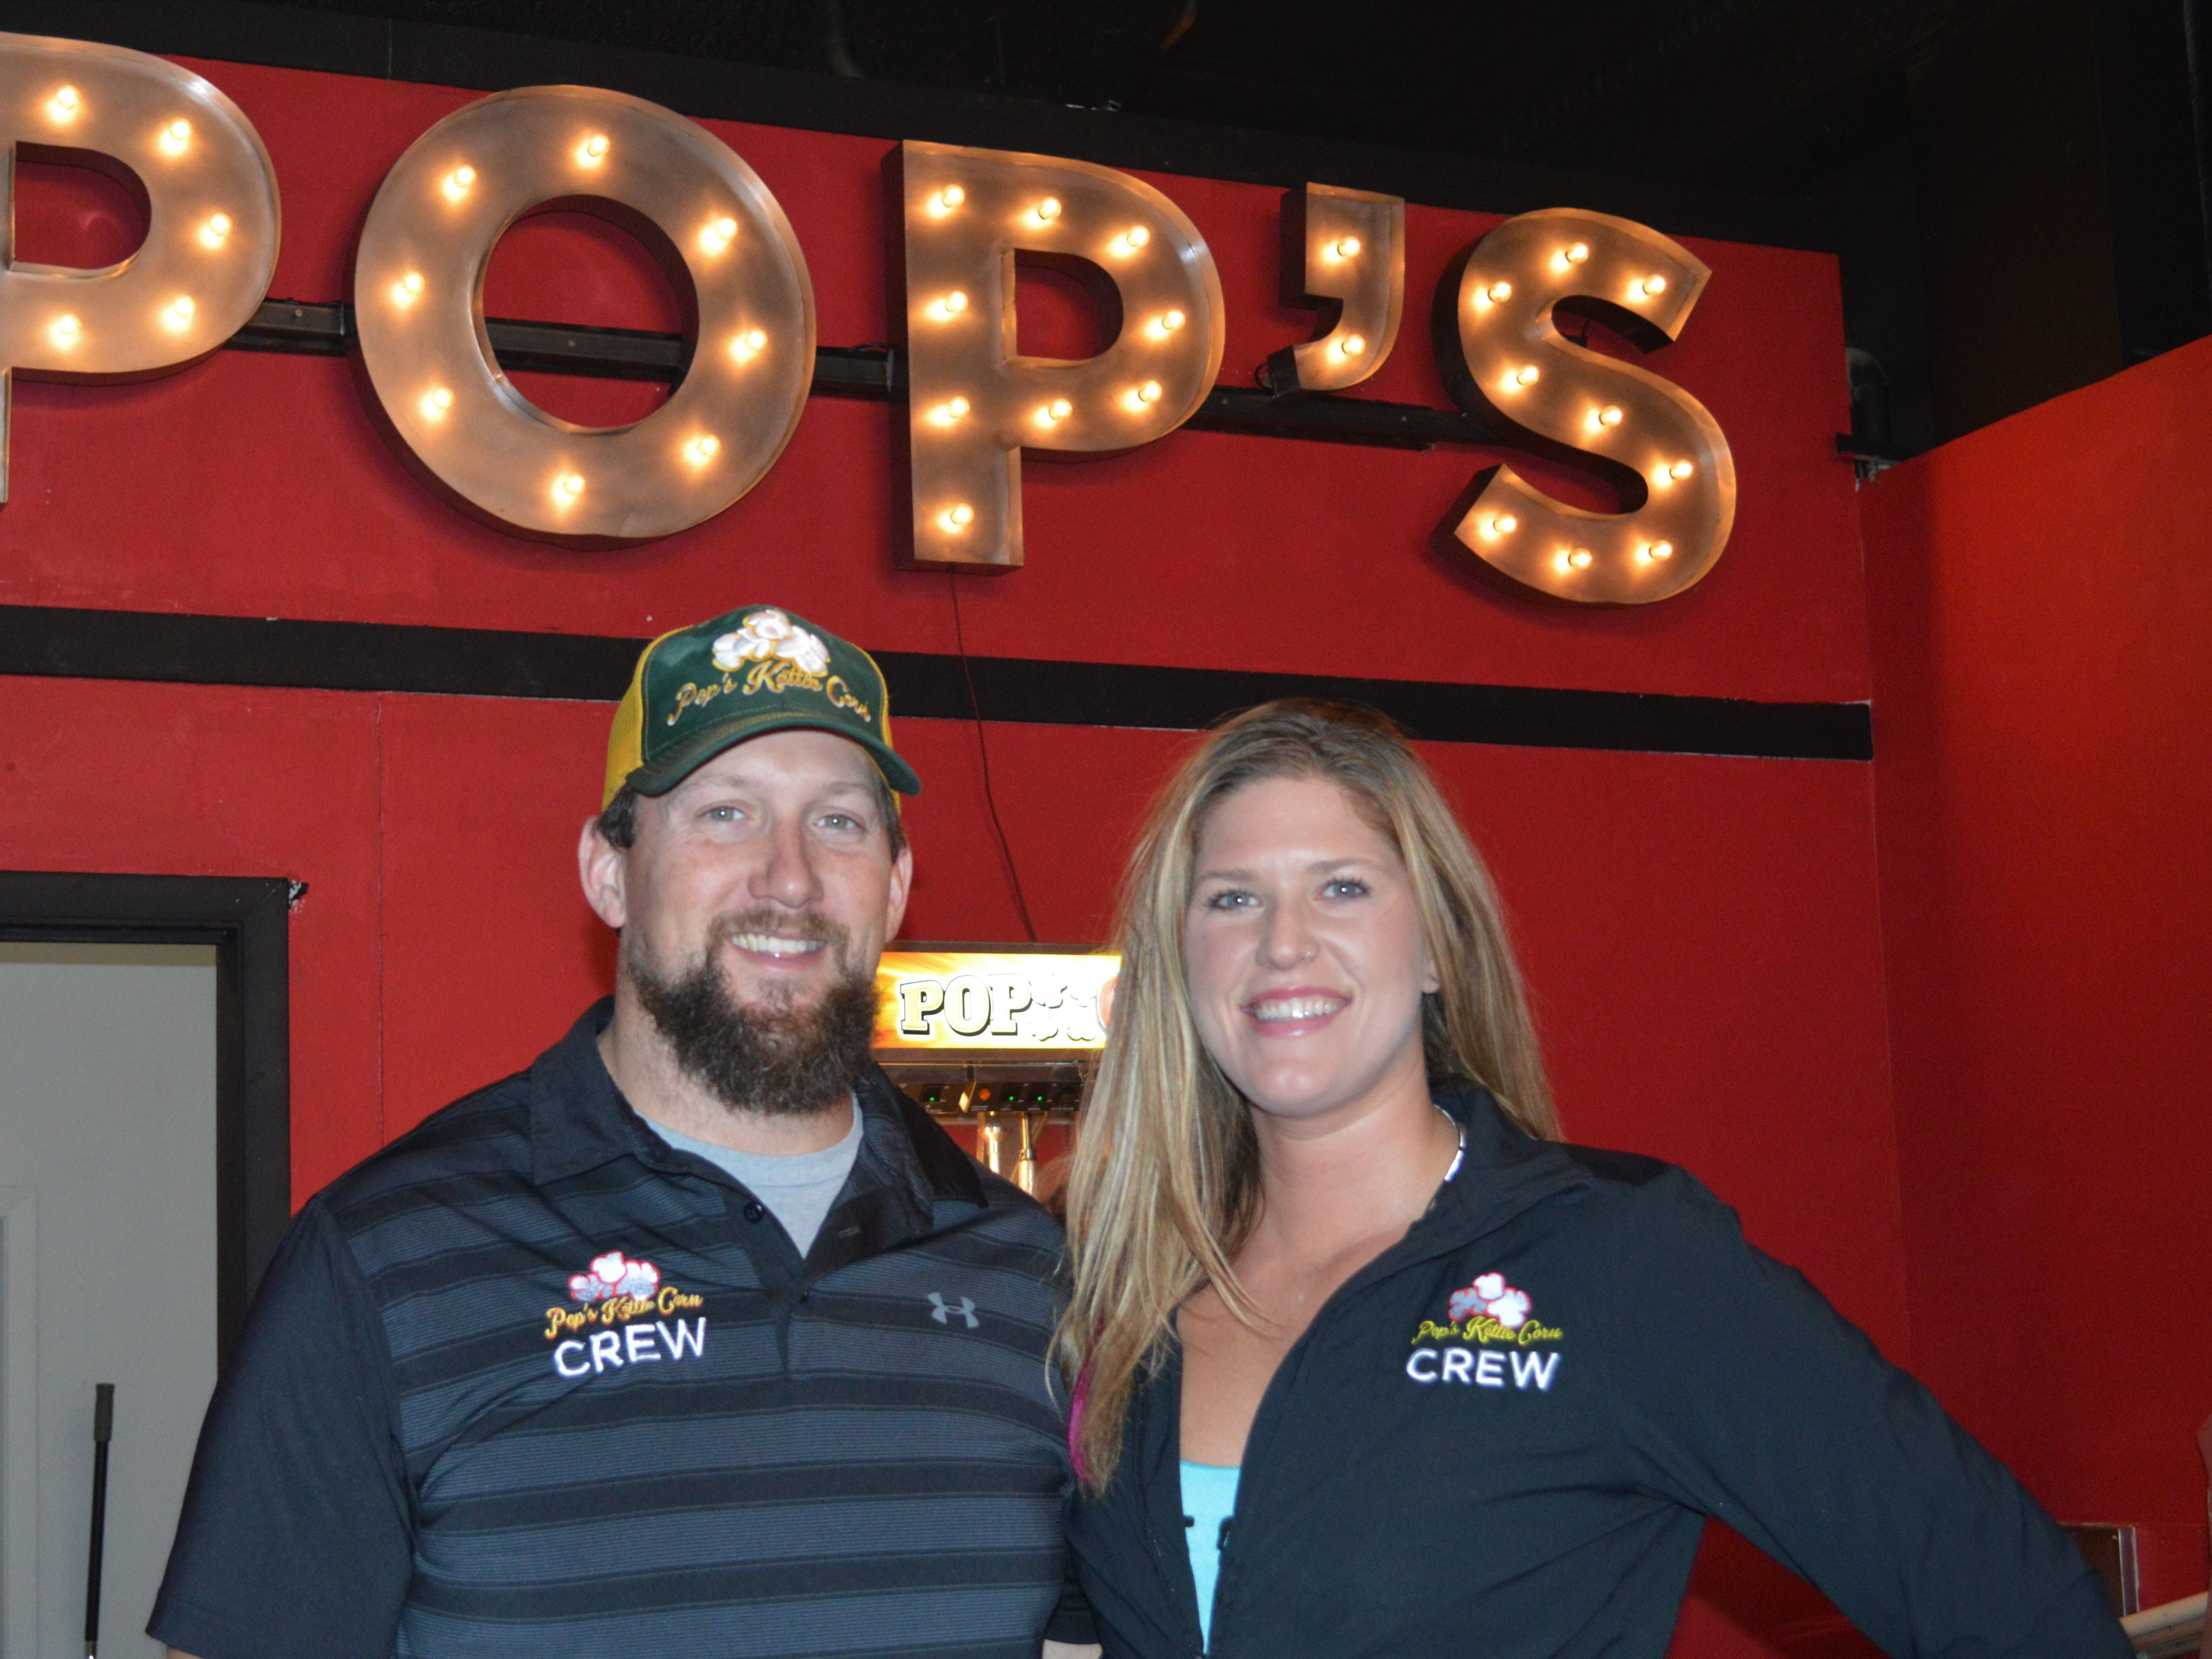 Mark Knudsen owns Pop's Kettle Corn and his girlfriend, Megan Giersch, is the brand manager. They are two of the four co-owners of 5Points Brew and Sweets.